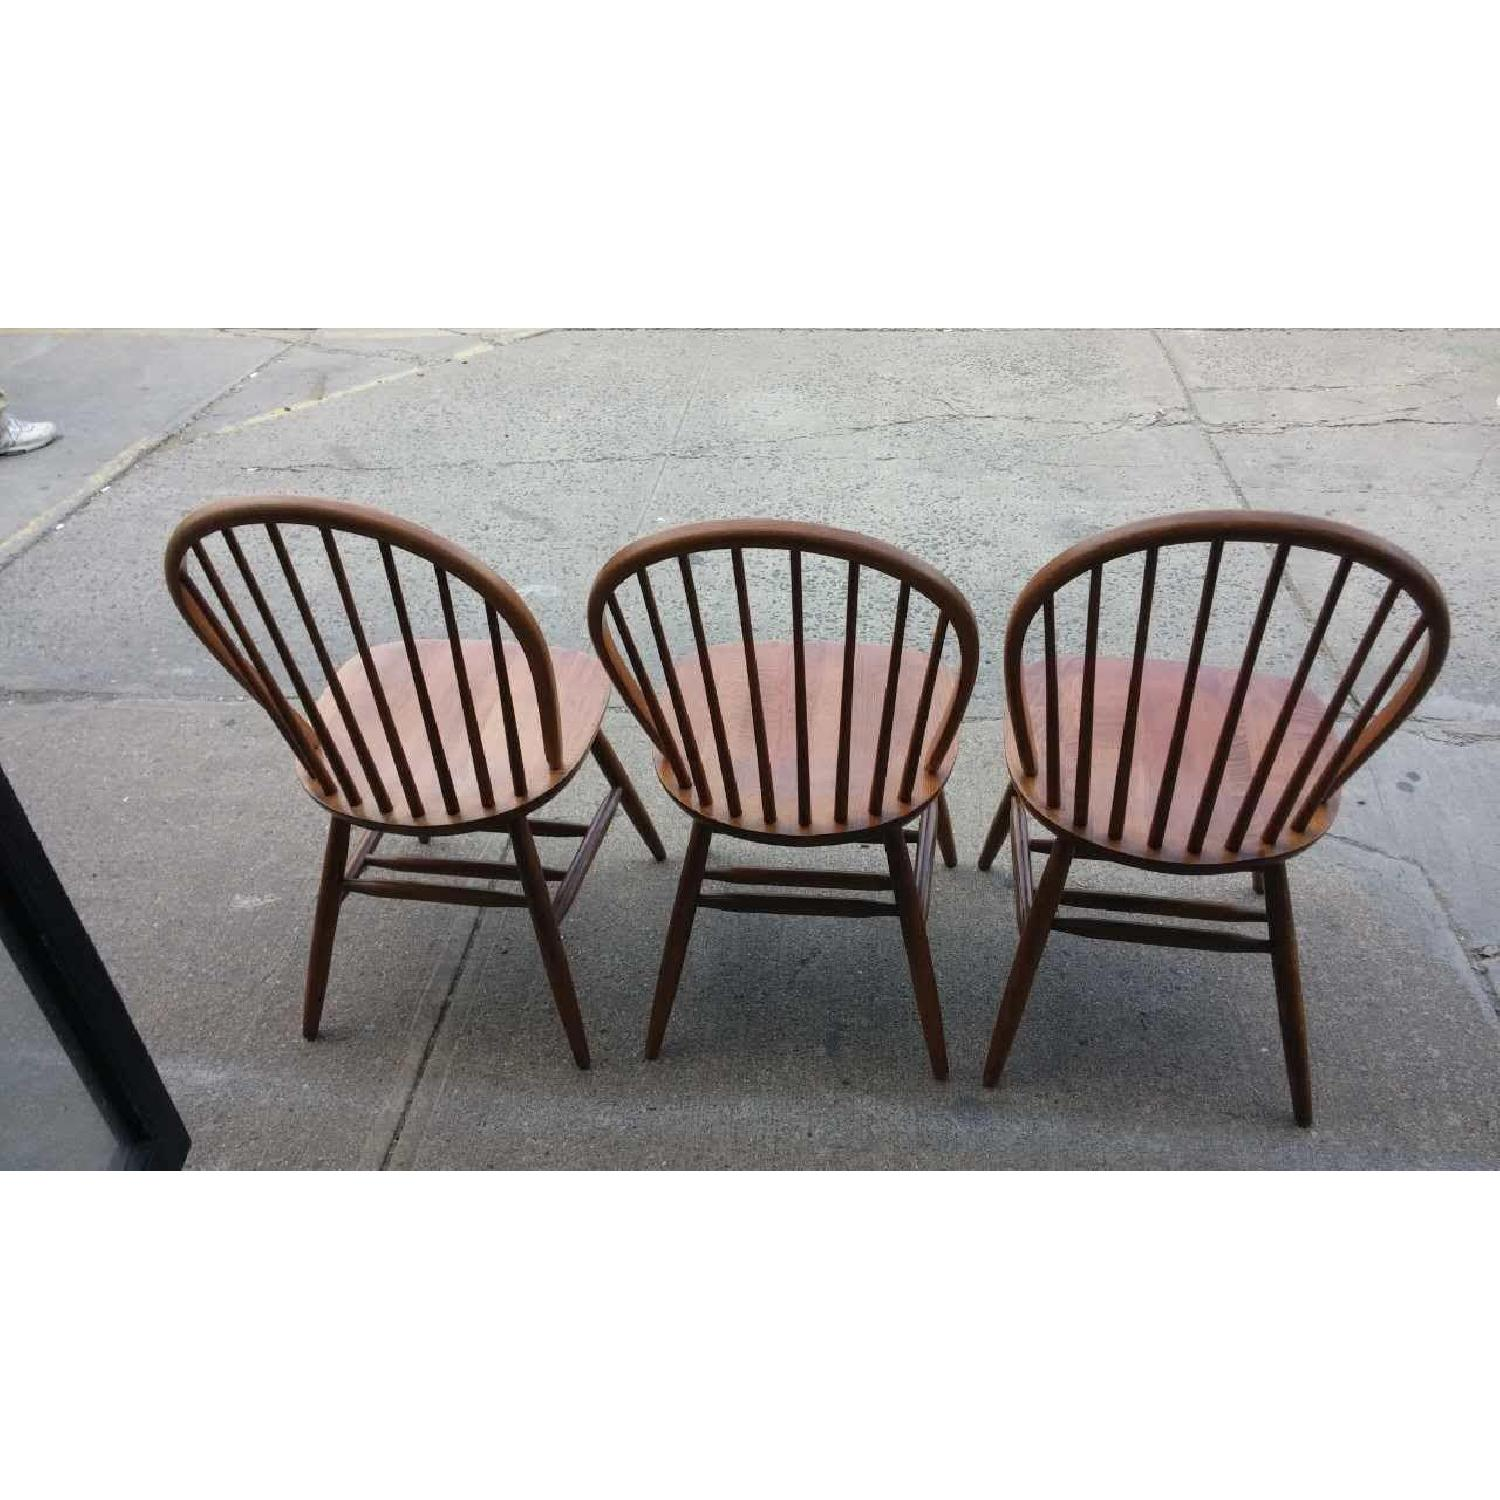 Solid Wood Dining Chairs - image-3